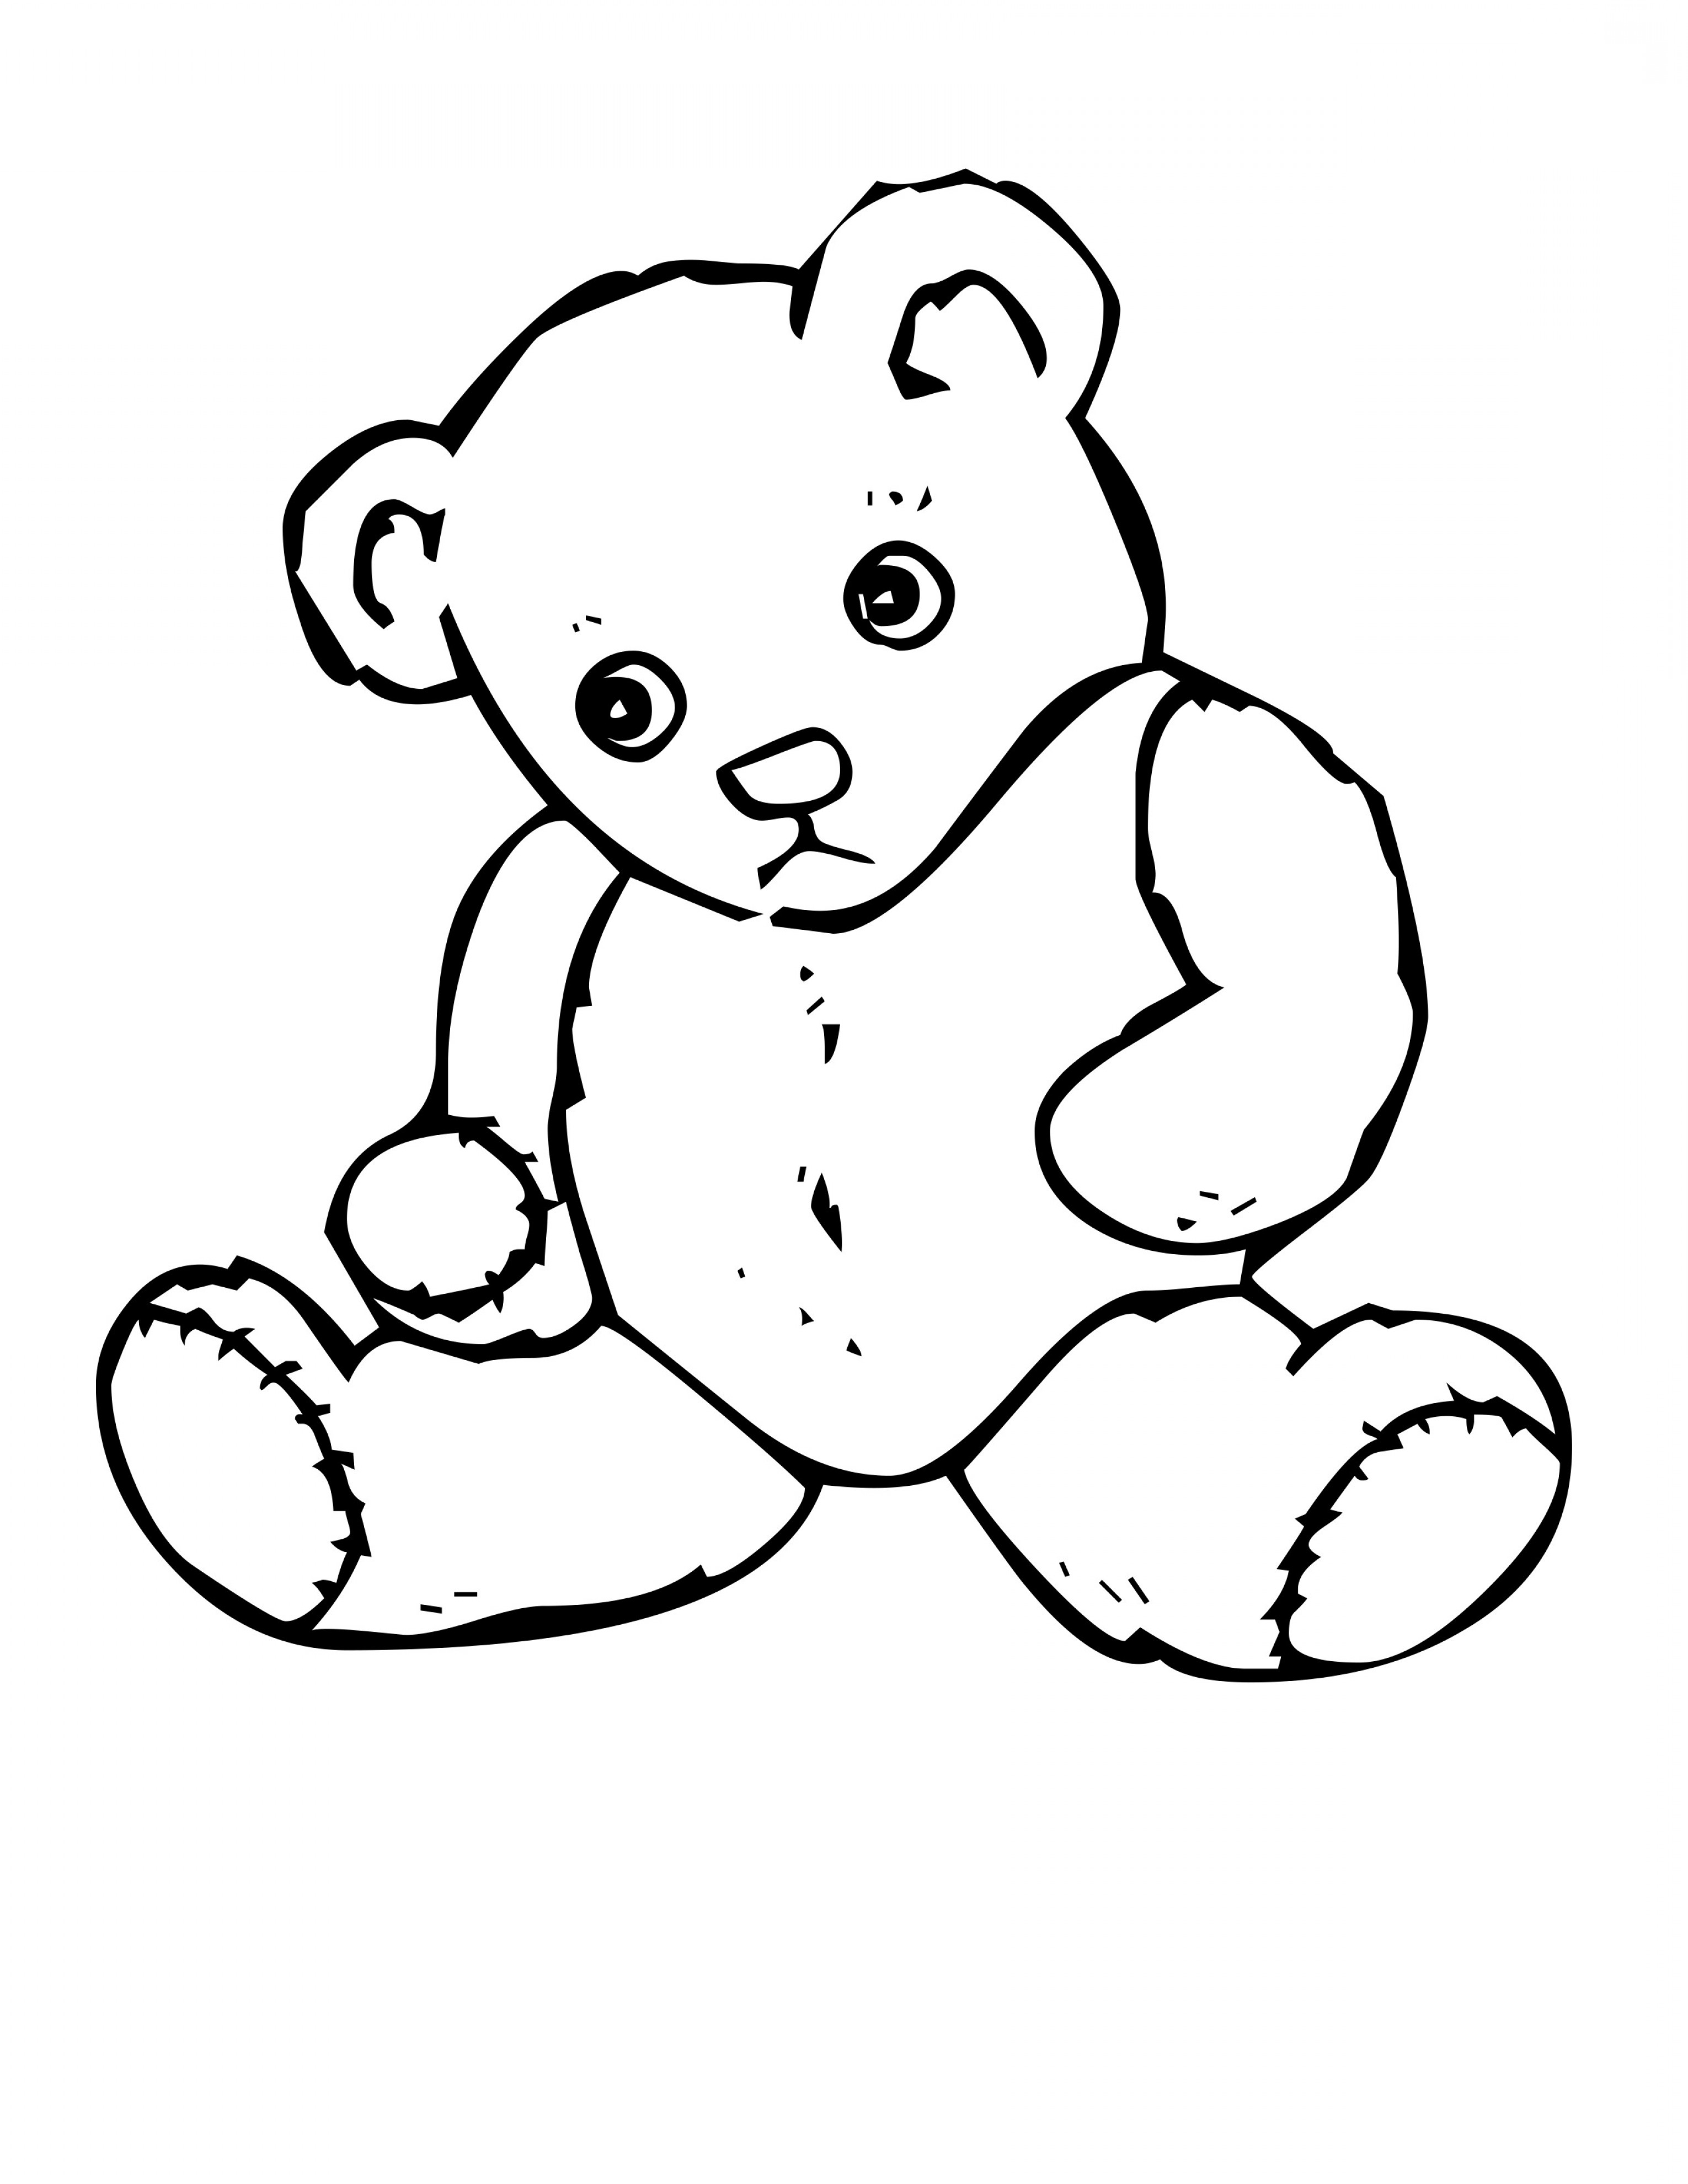 Line Drawing Teddy Bear : Bear line drawing at getdrawings free for personal